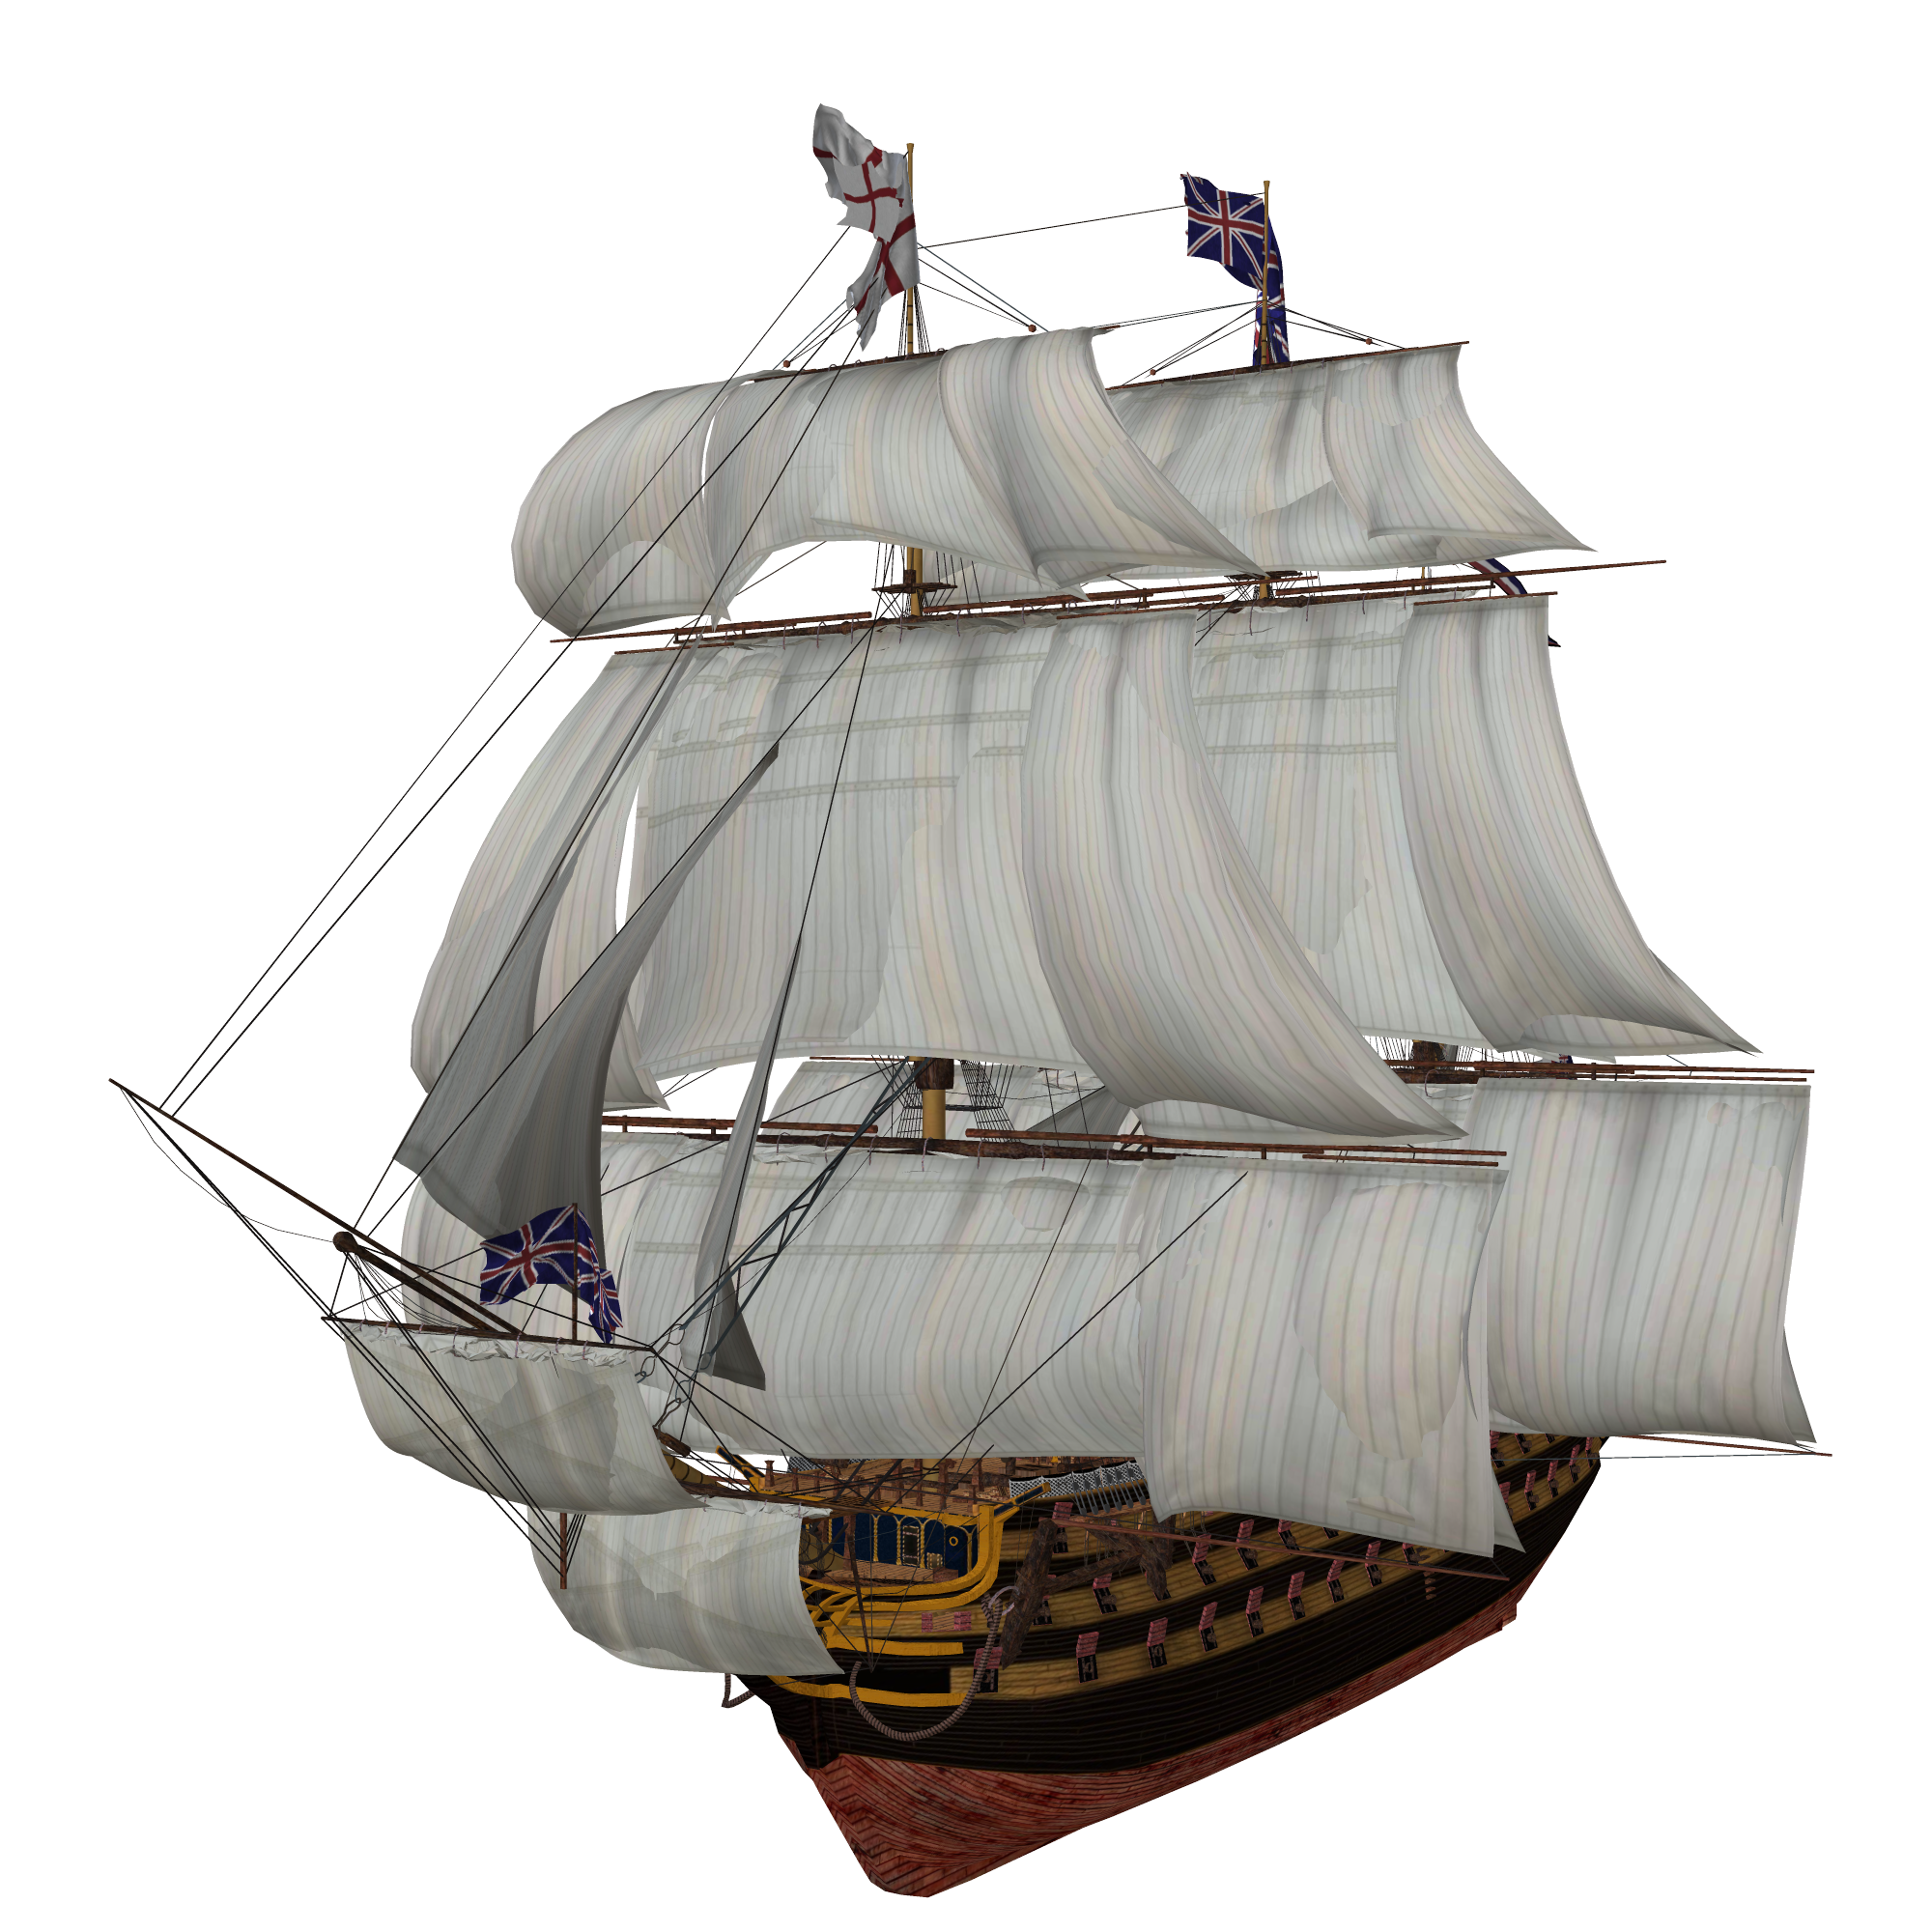 banner freeuse stock Big ship png image. Yacht clipart waterways